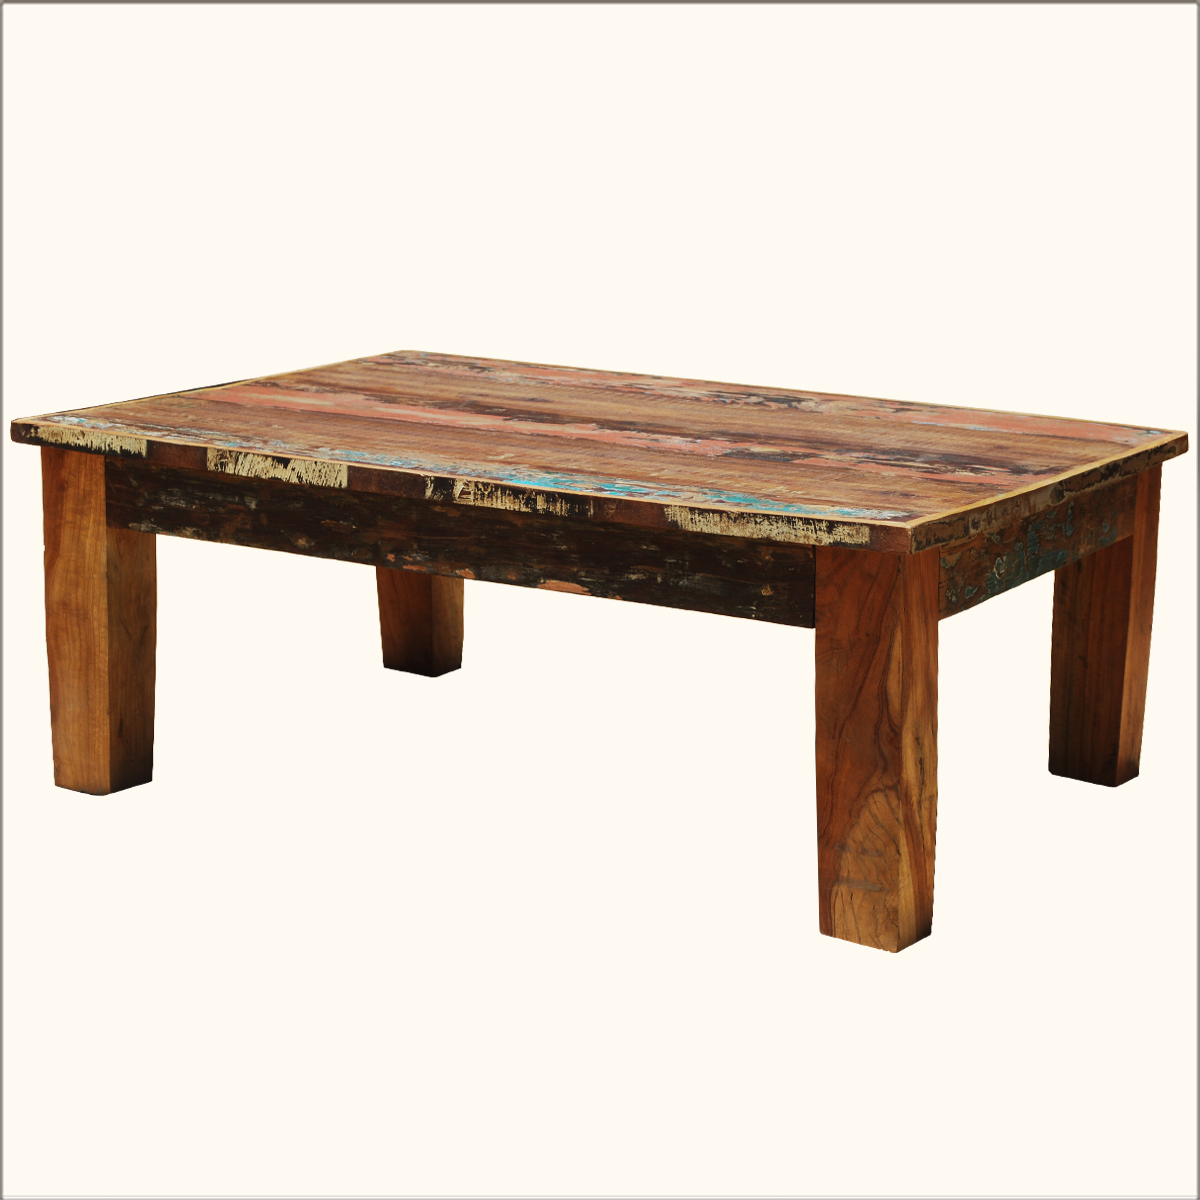 Distressed Rustic Reclaimed Coffee Table Wood Multi Color